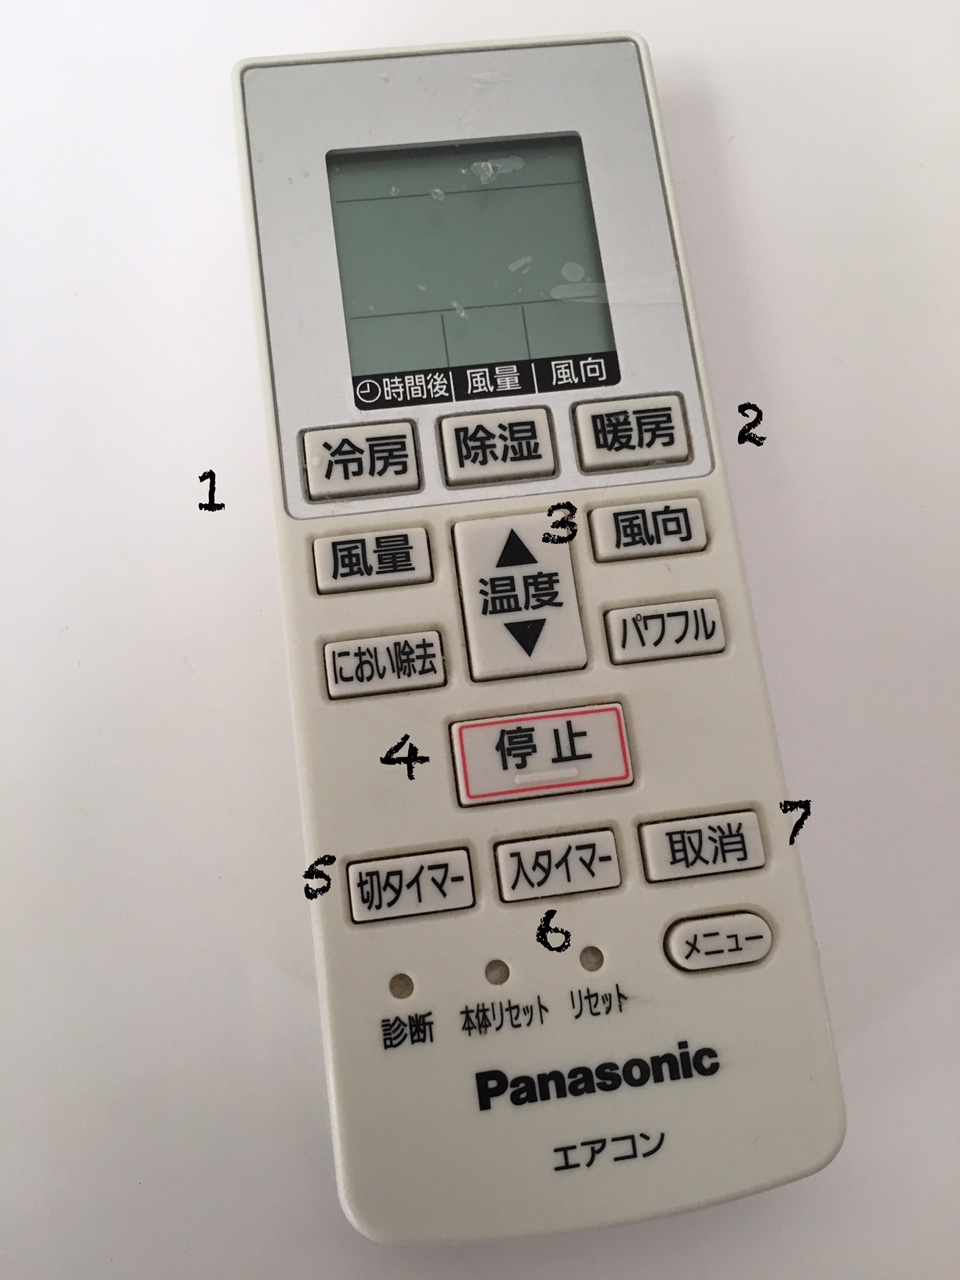 How to use your Japanese AC remote control